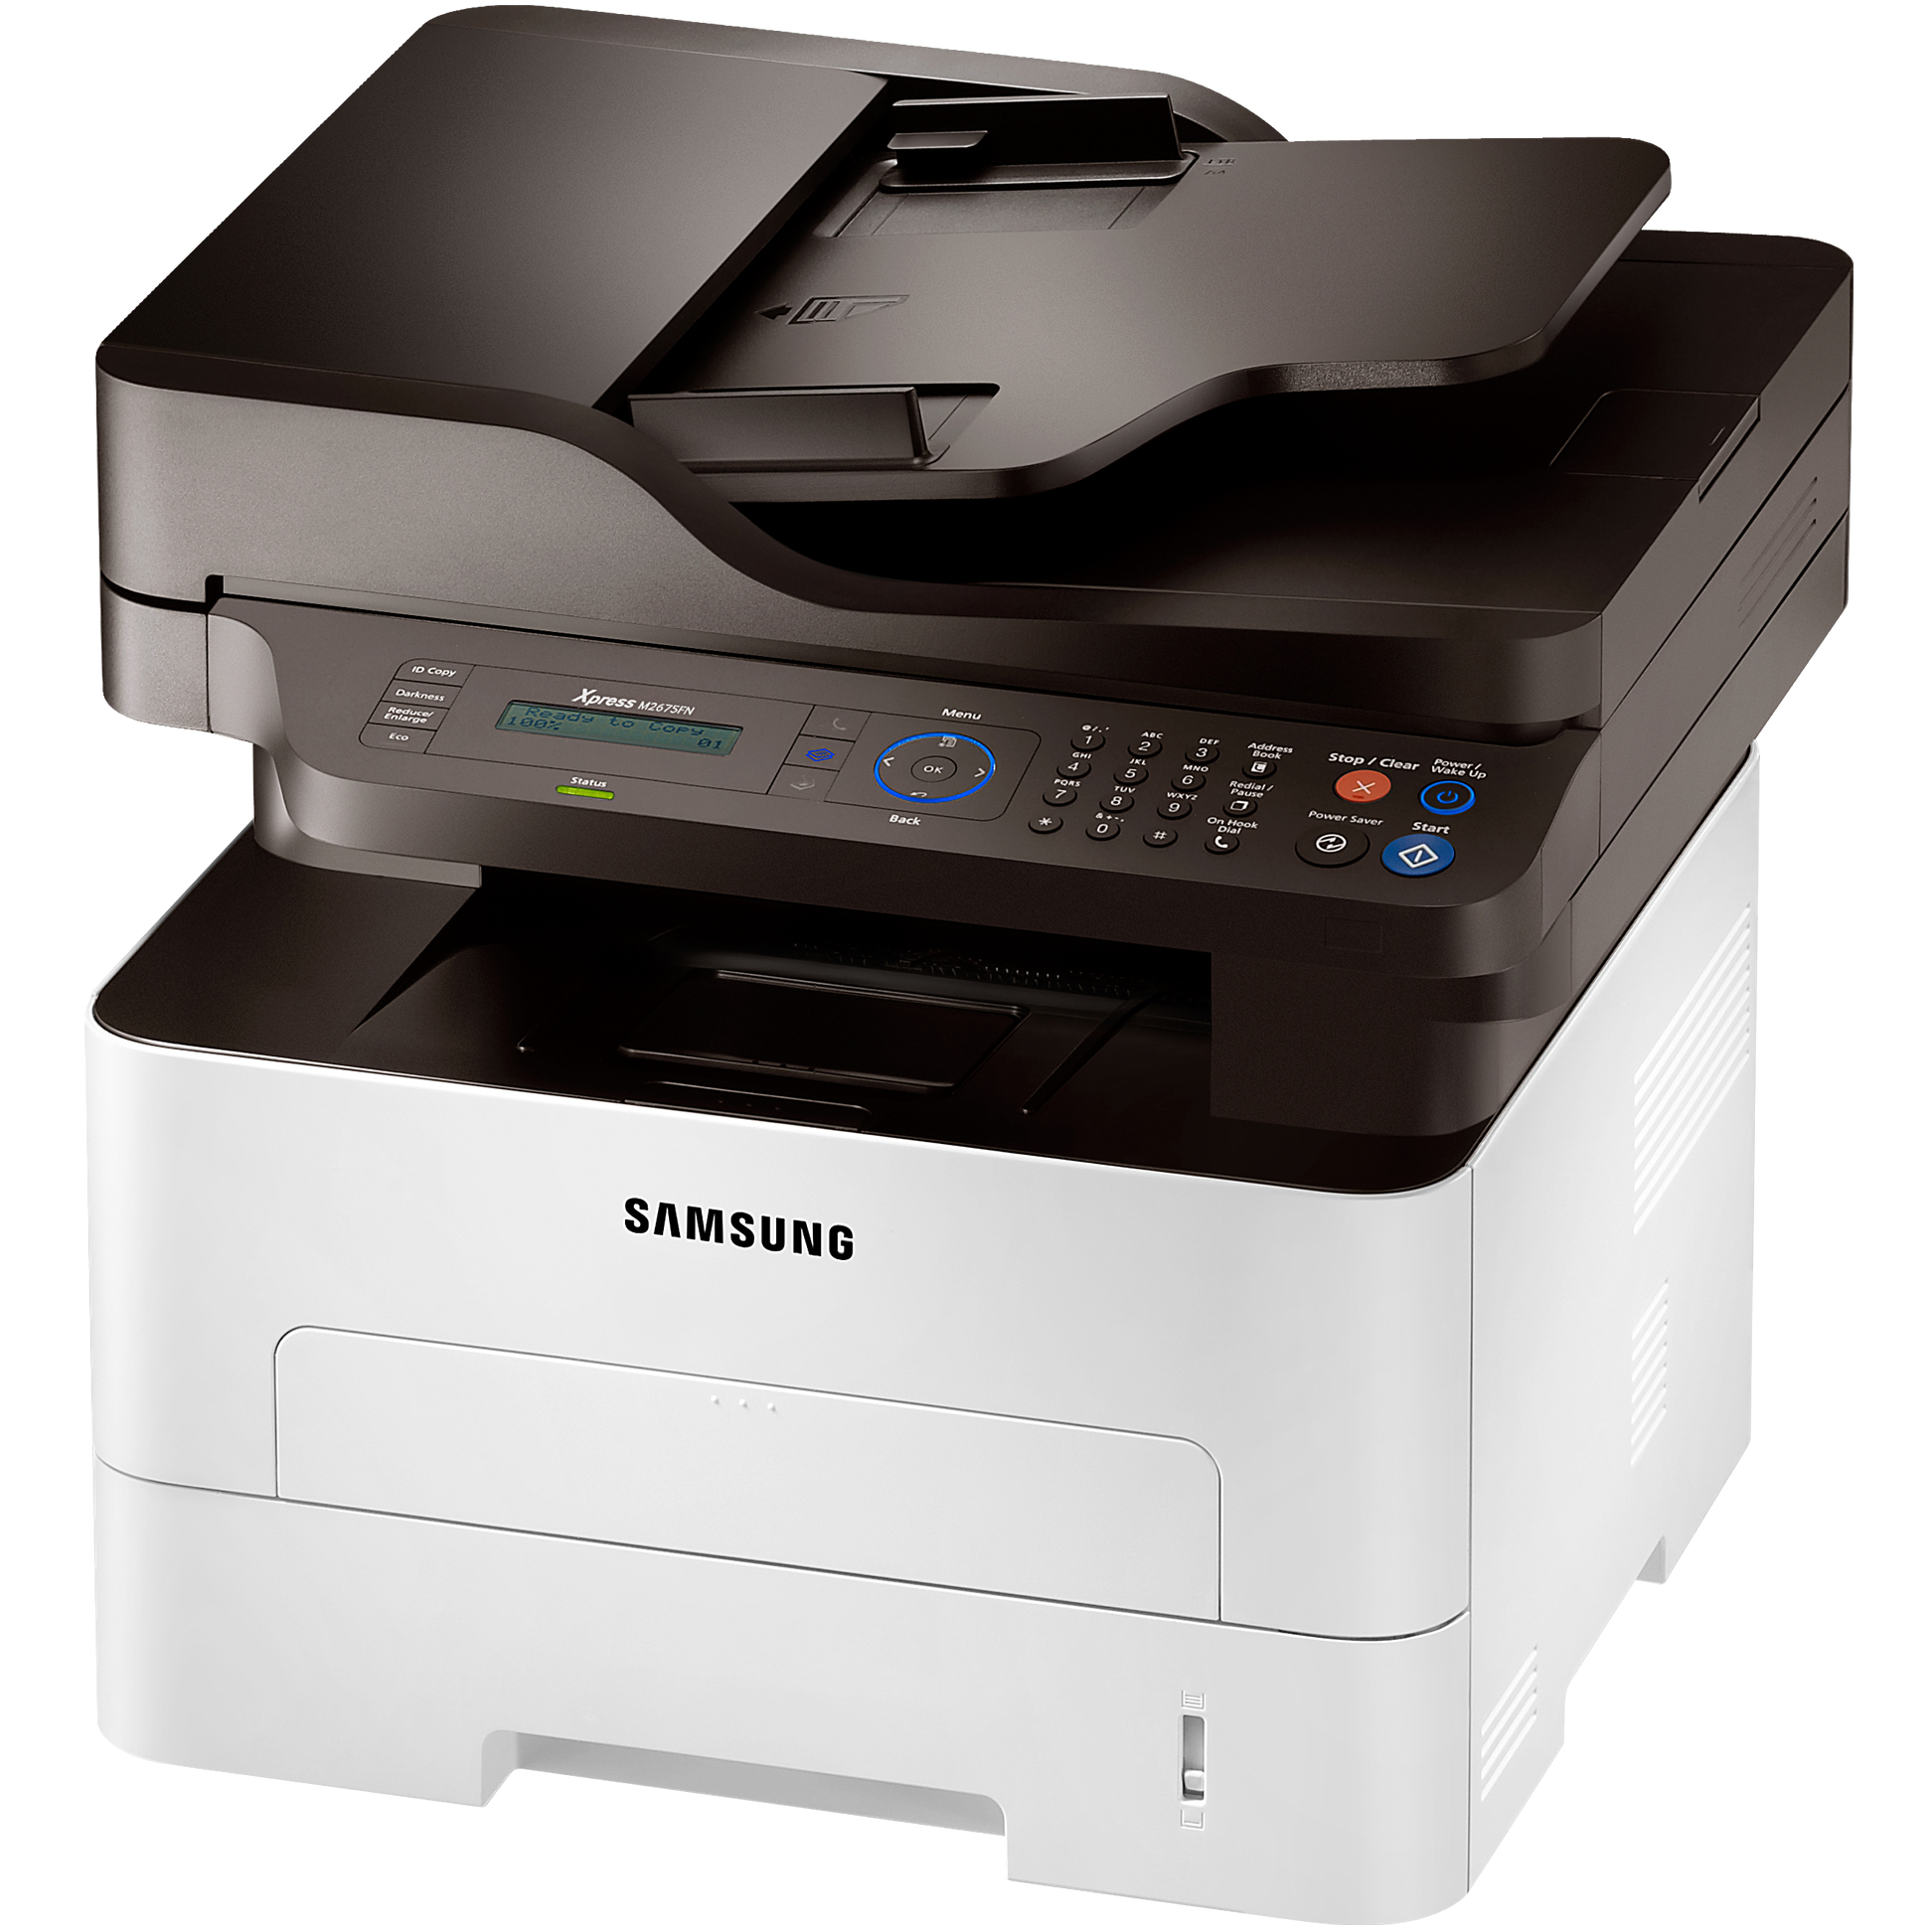 Visit o79yv71net.ml to explore a variety of printers, scanners, ink and toner. Shop Now to get free shipping.